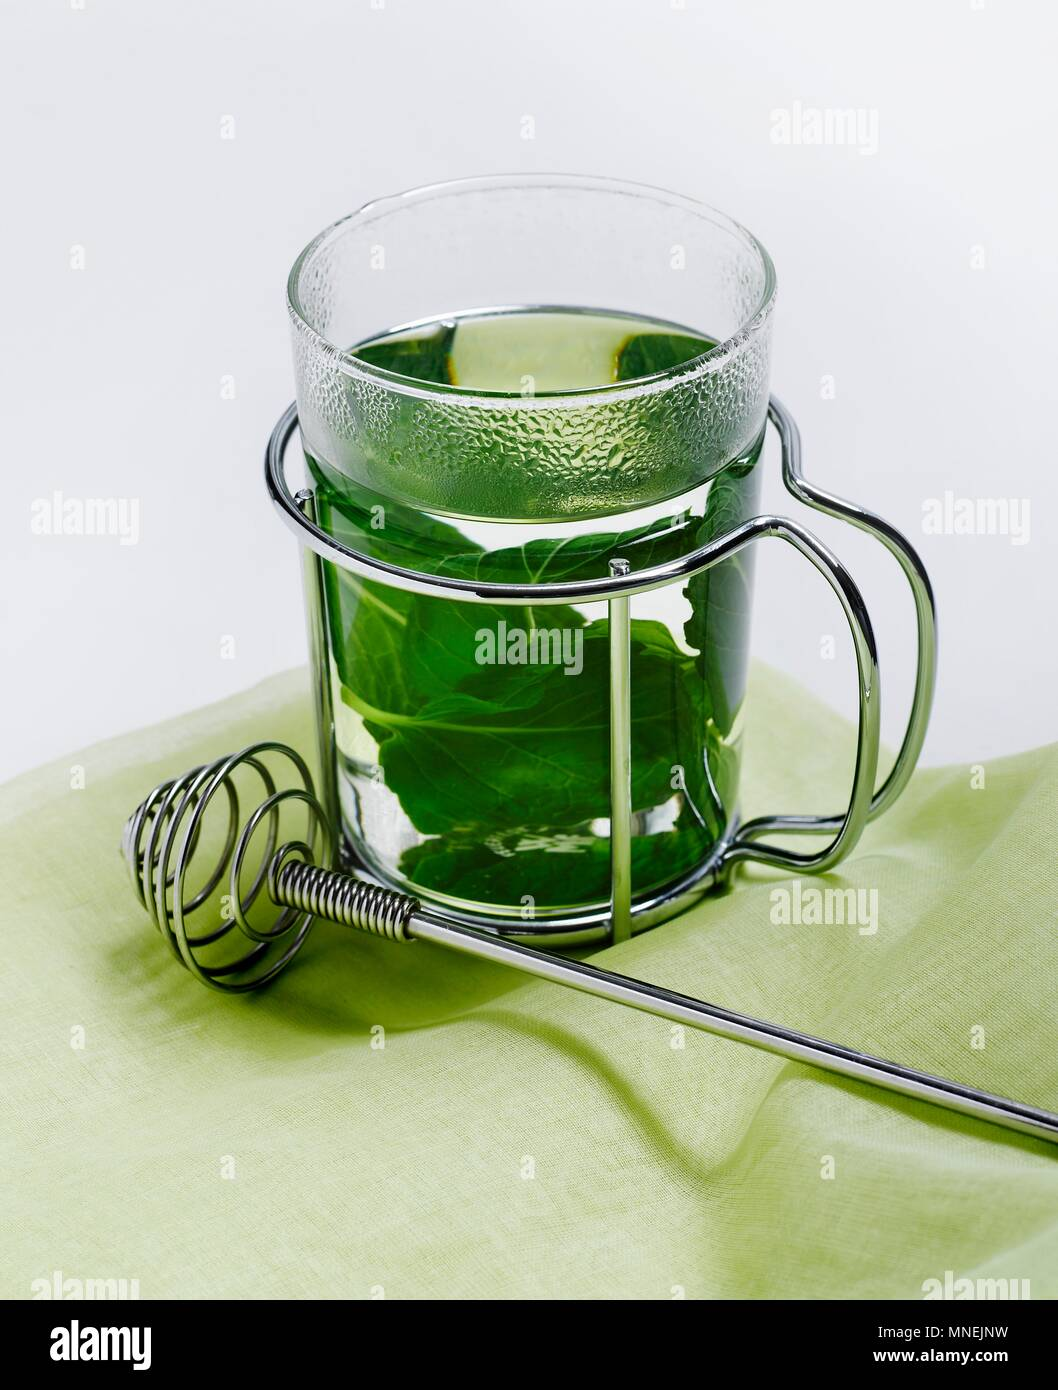 A Glass of Mint Tea with Fresh Mint Leaves - Stock Image